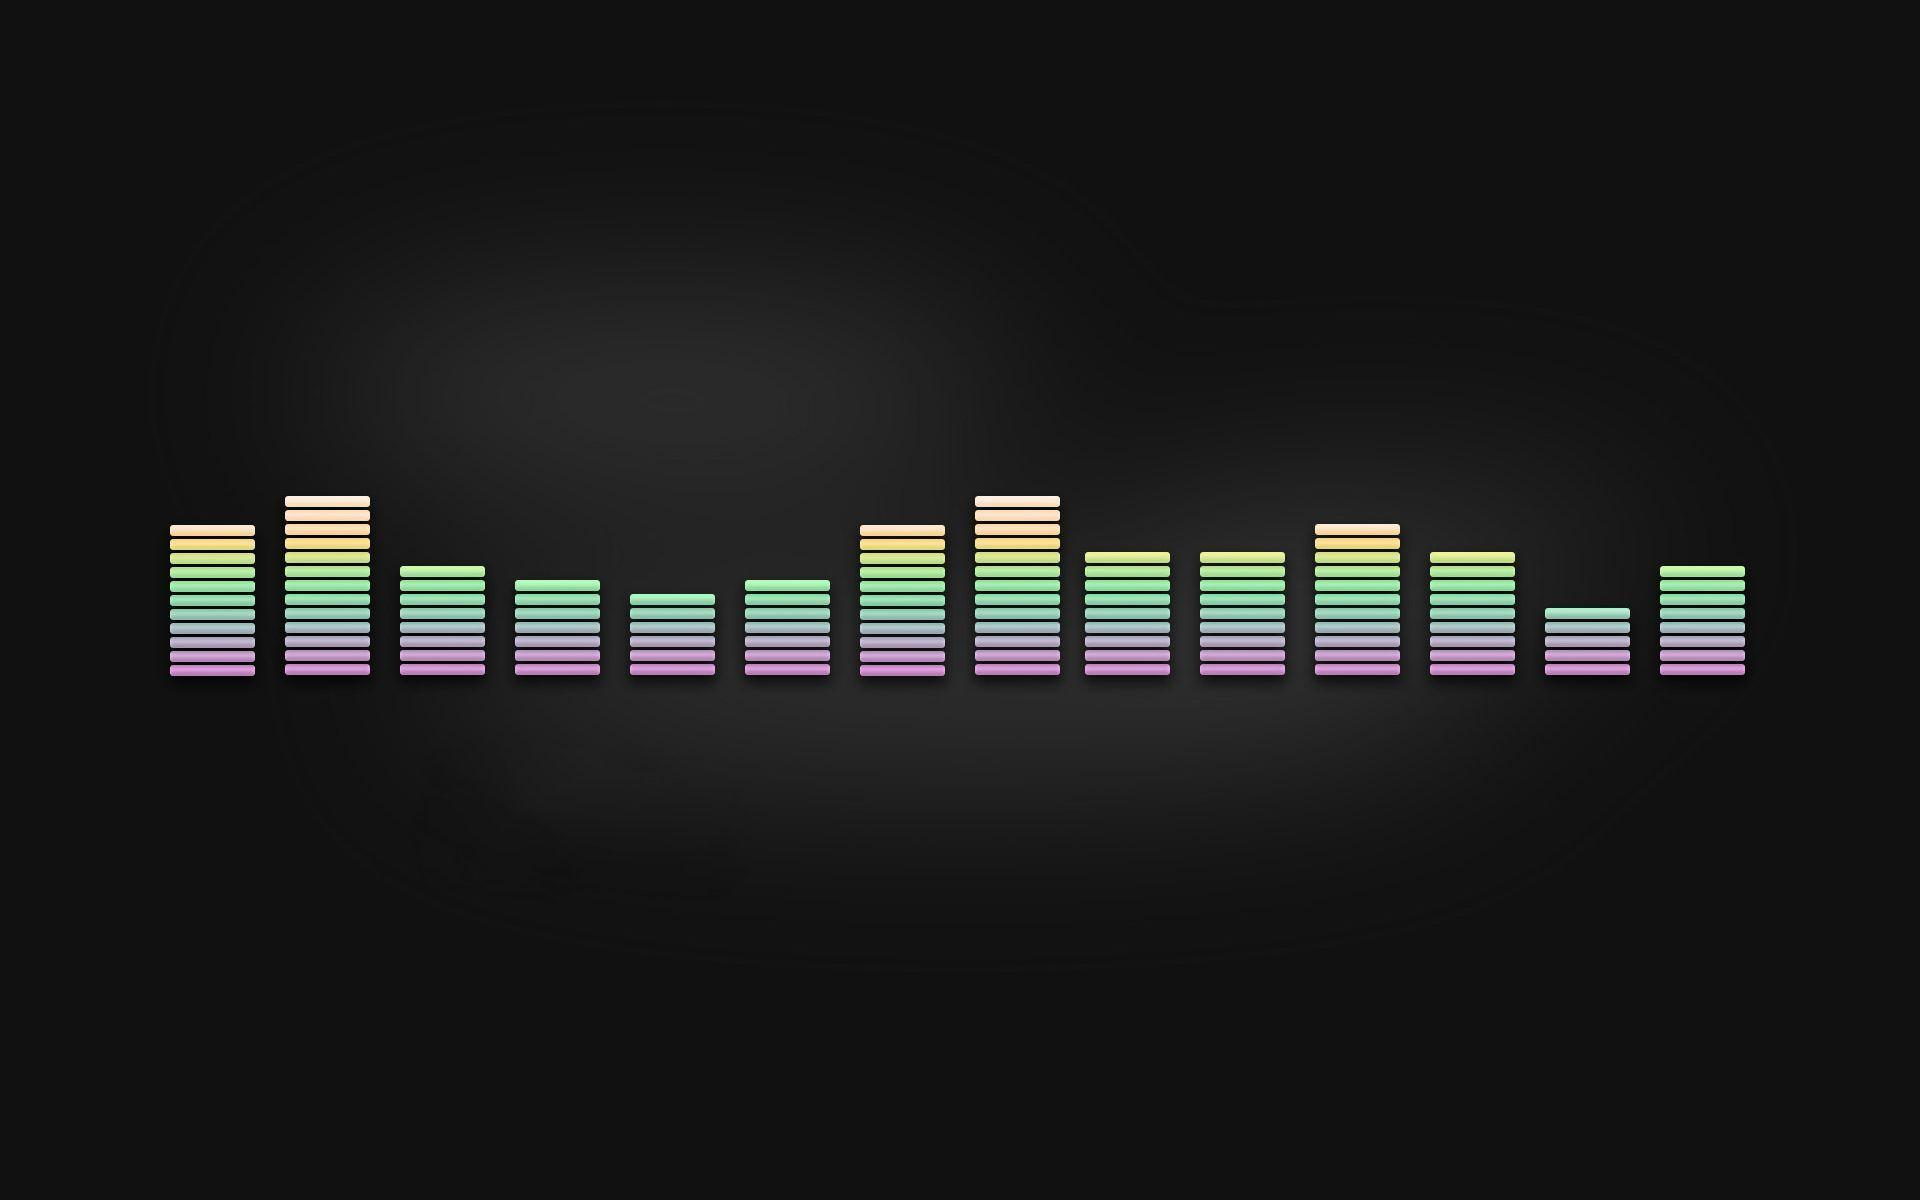 Download Free 3d Music Equalizer Wallpapers Hd: Equalizer Wallpapers